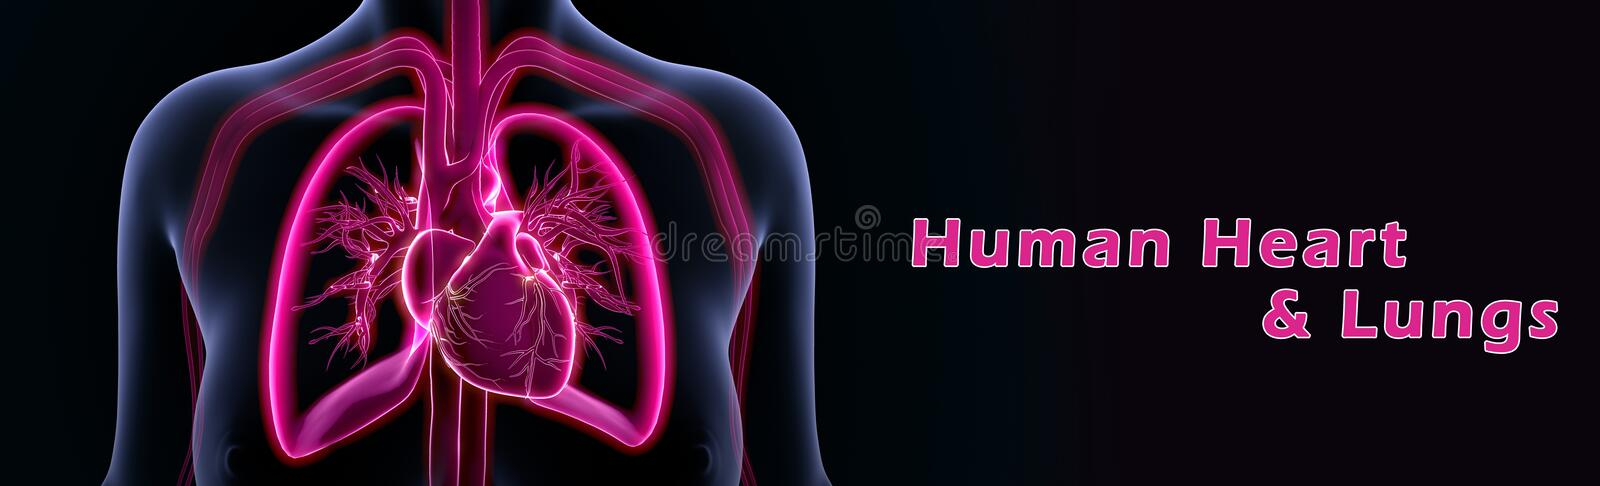 Human Heart and Lungs. Pulmonary lung and cardiovascular heart and circulation health are closely tied because they work as a team to oxygenate the cells and royalty free illustration